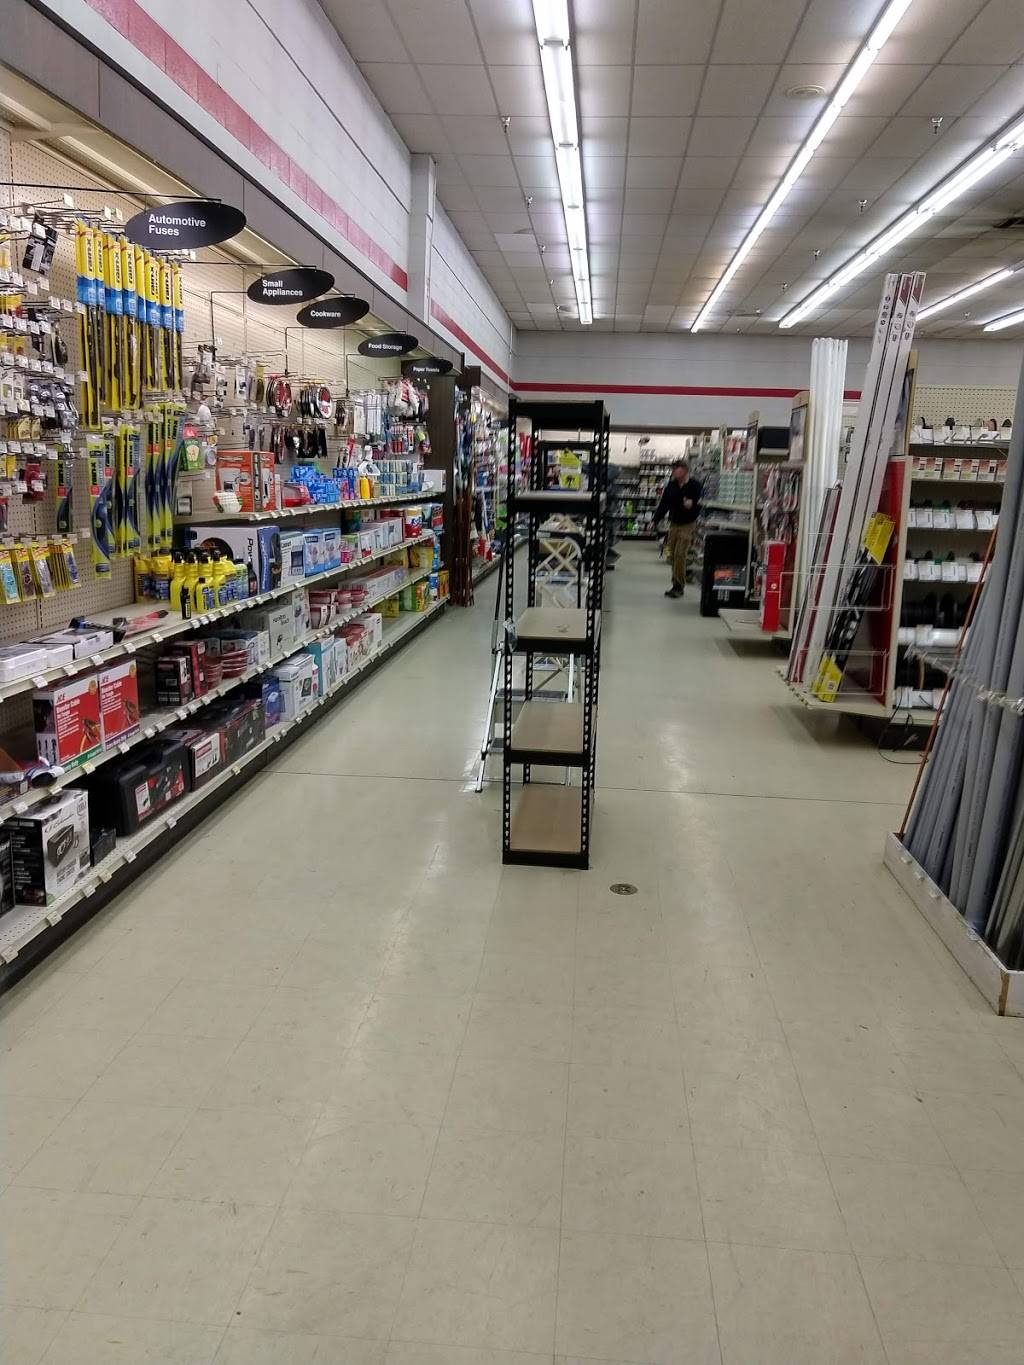 Thriftway Home Center & Ace Hardware - hardware store  | Photo 3 of 5 | Address: 4705 W State St, Boise, ID 83703, USA | Phone: (208) 342-1668